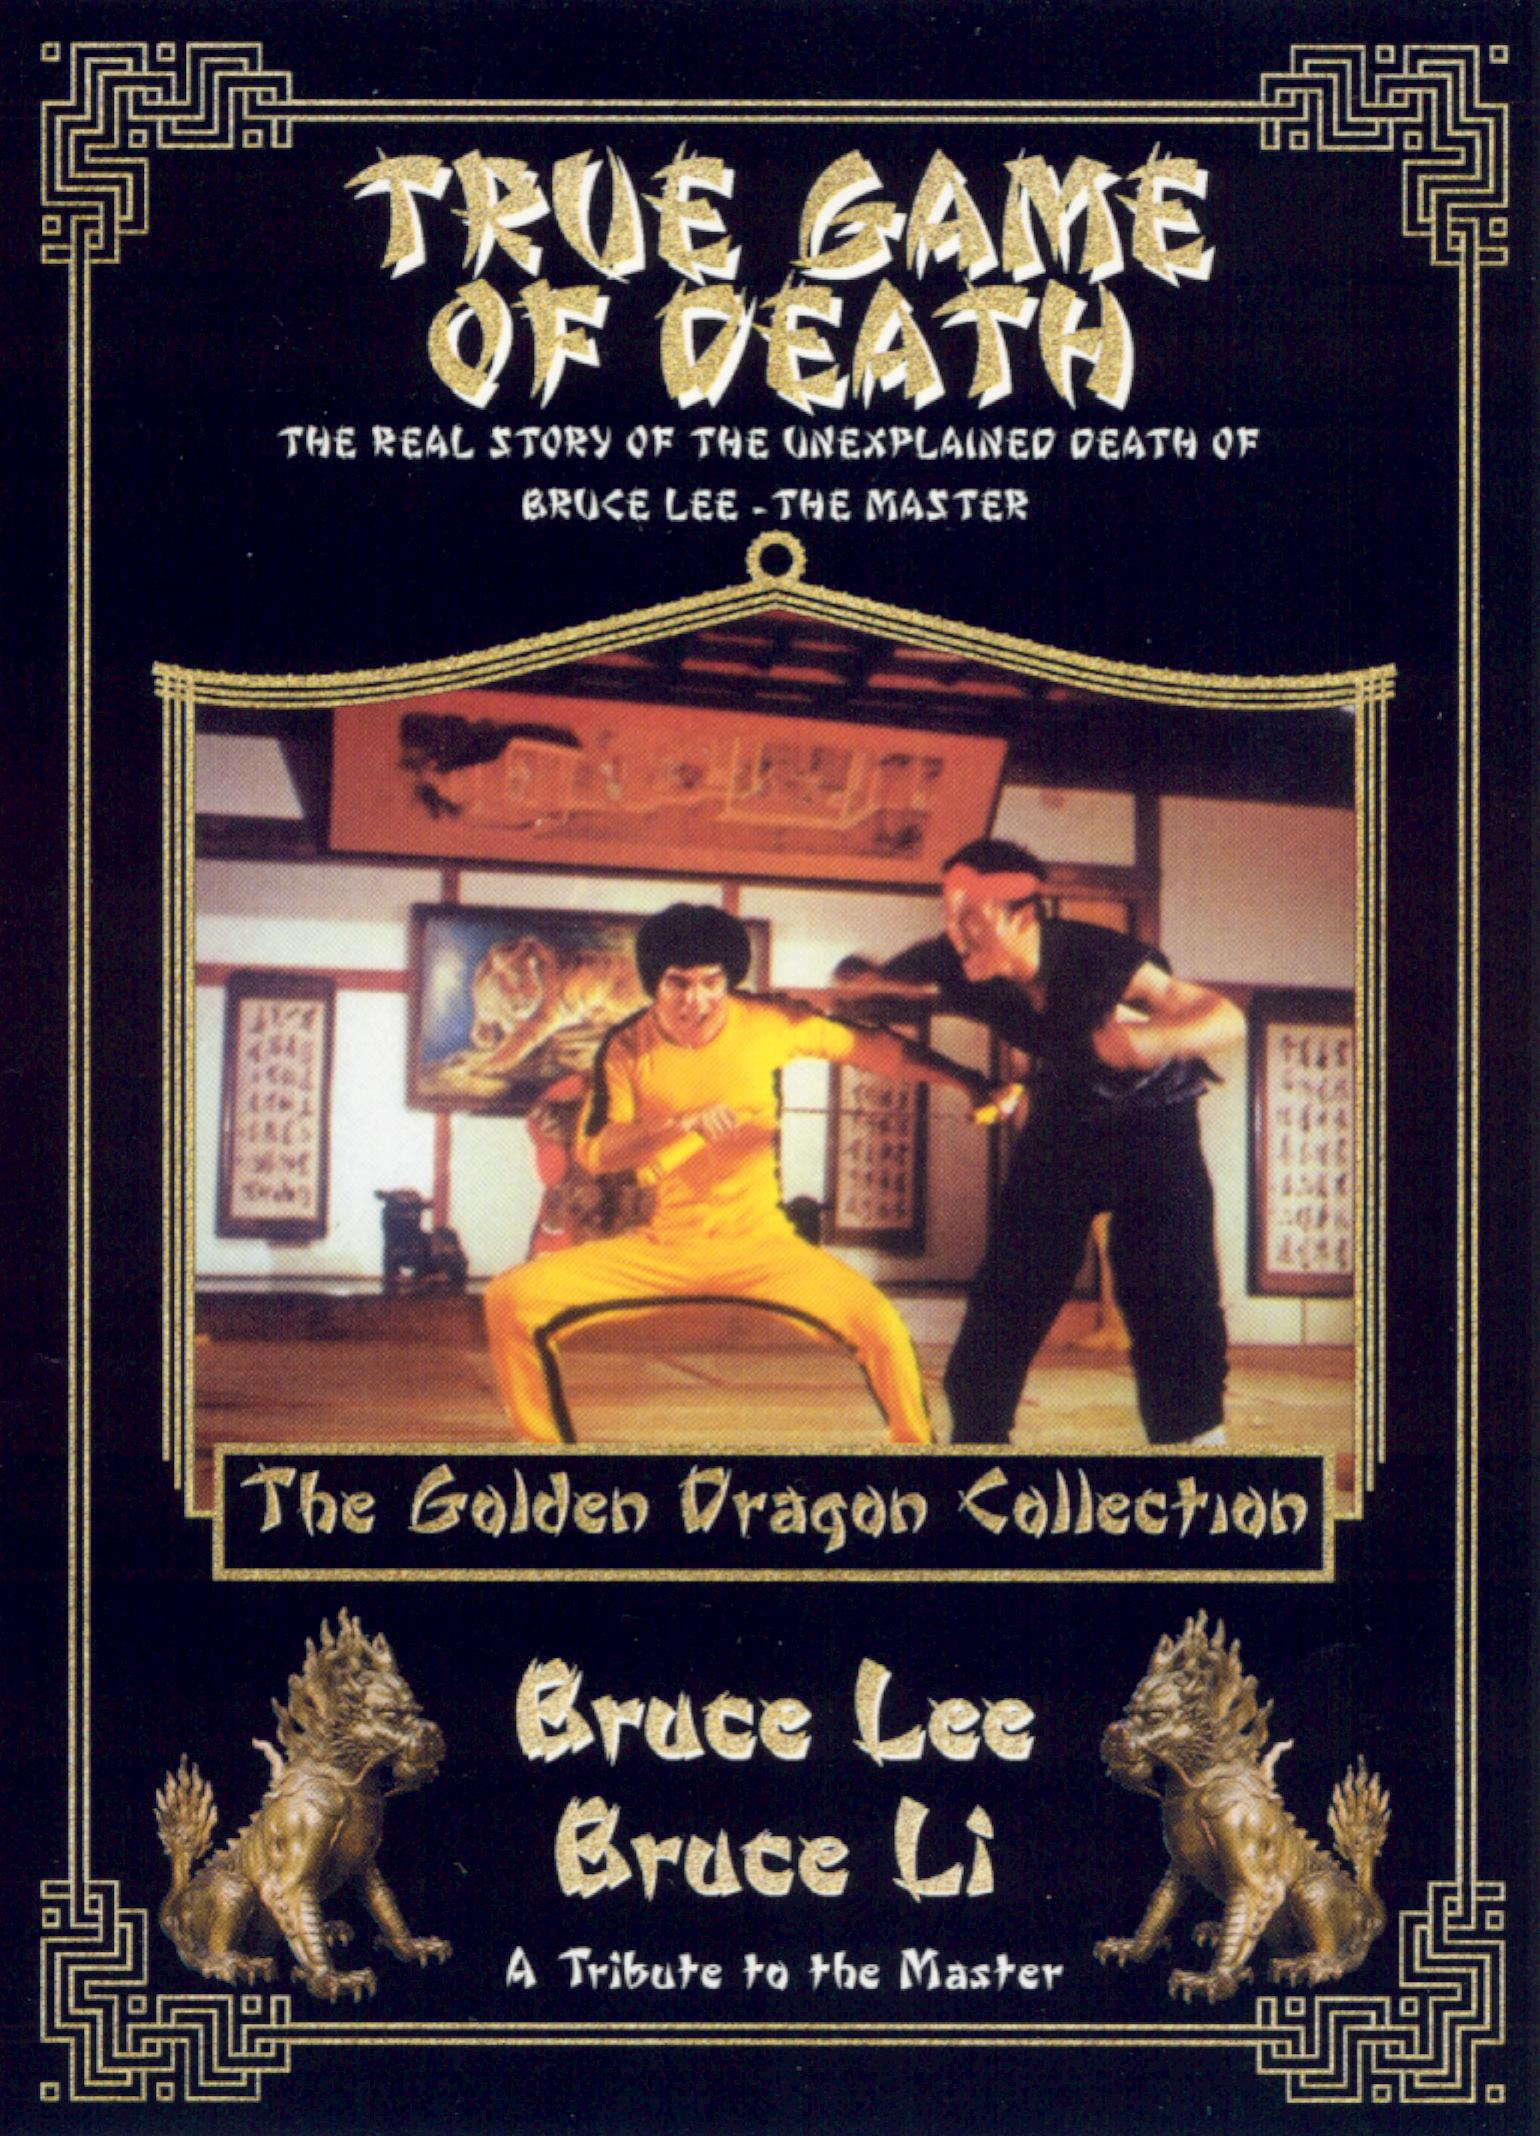 The True Game of Death...